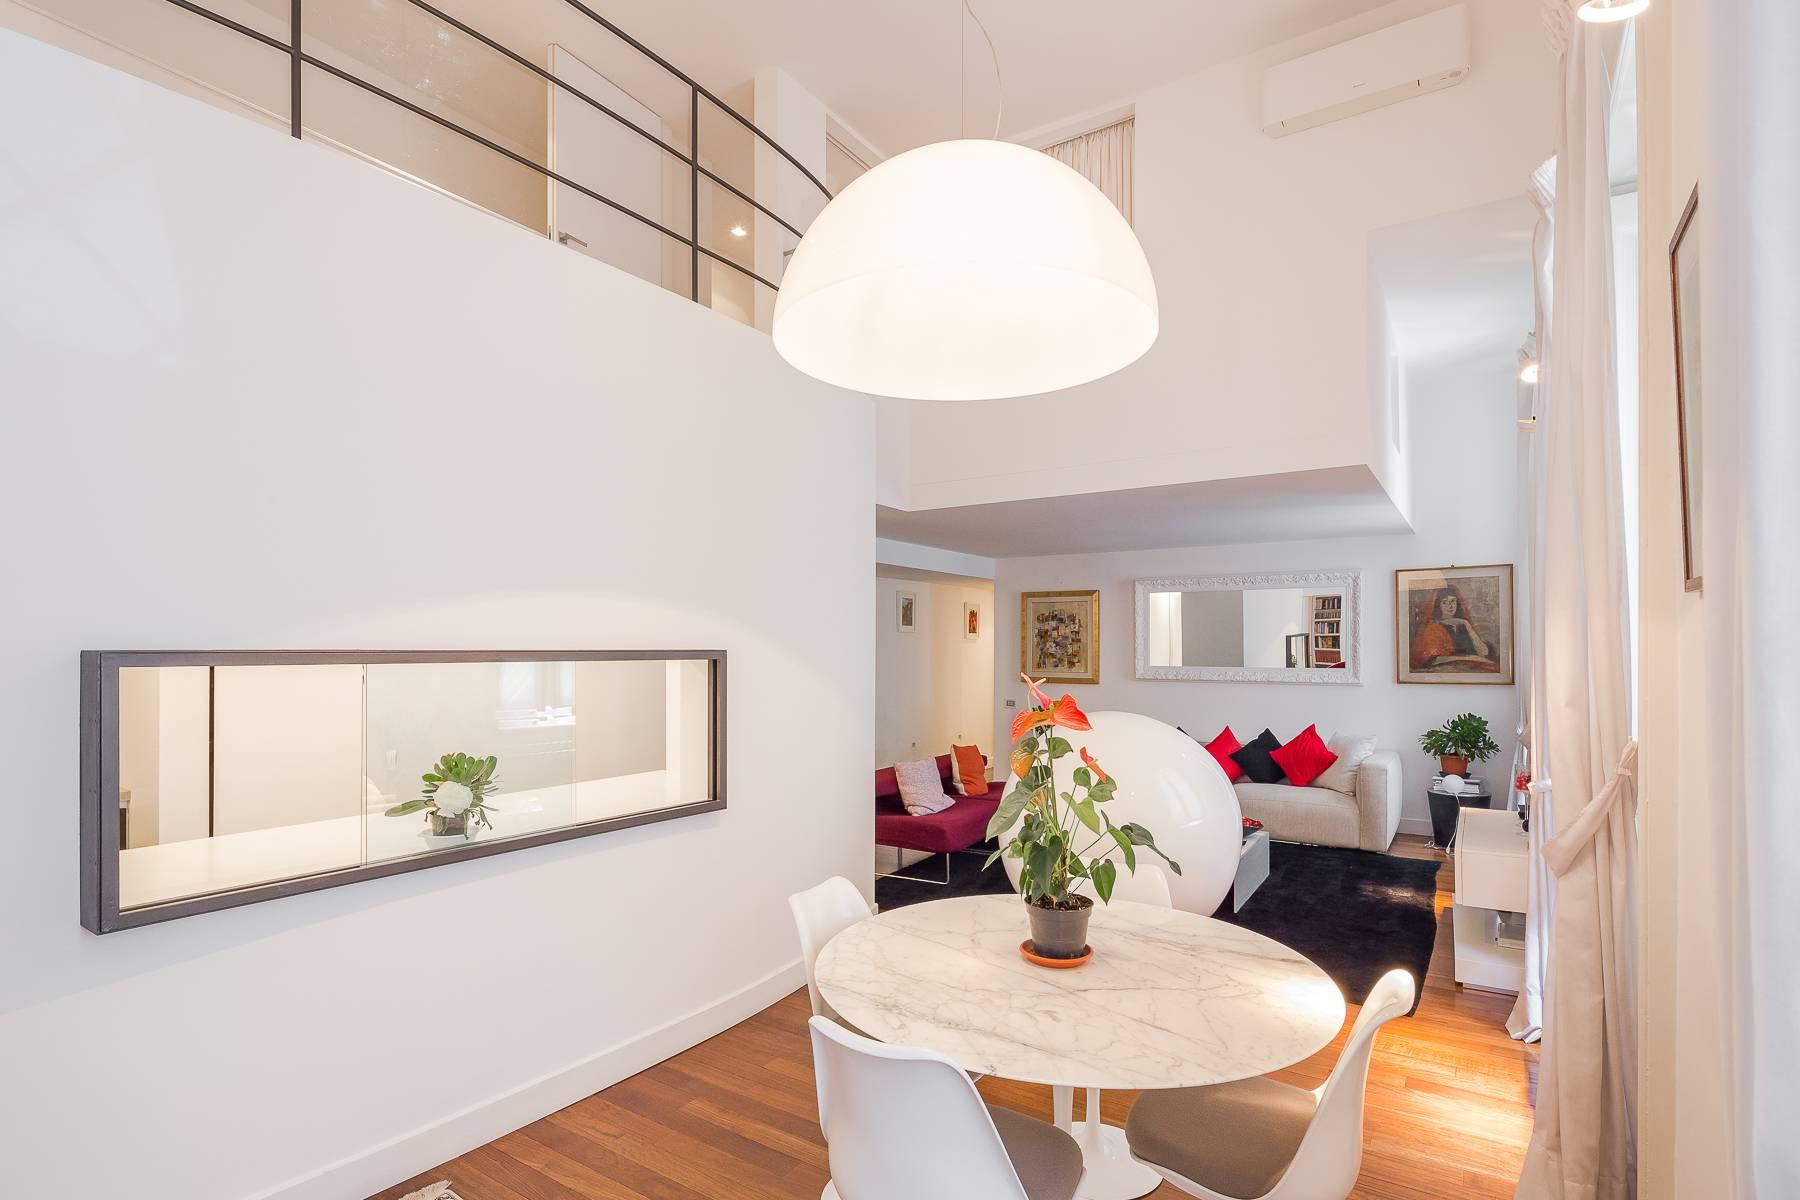 Apartment / loft in Brera district, Via Montebello / De Marchi - 8